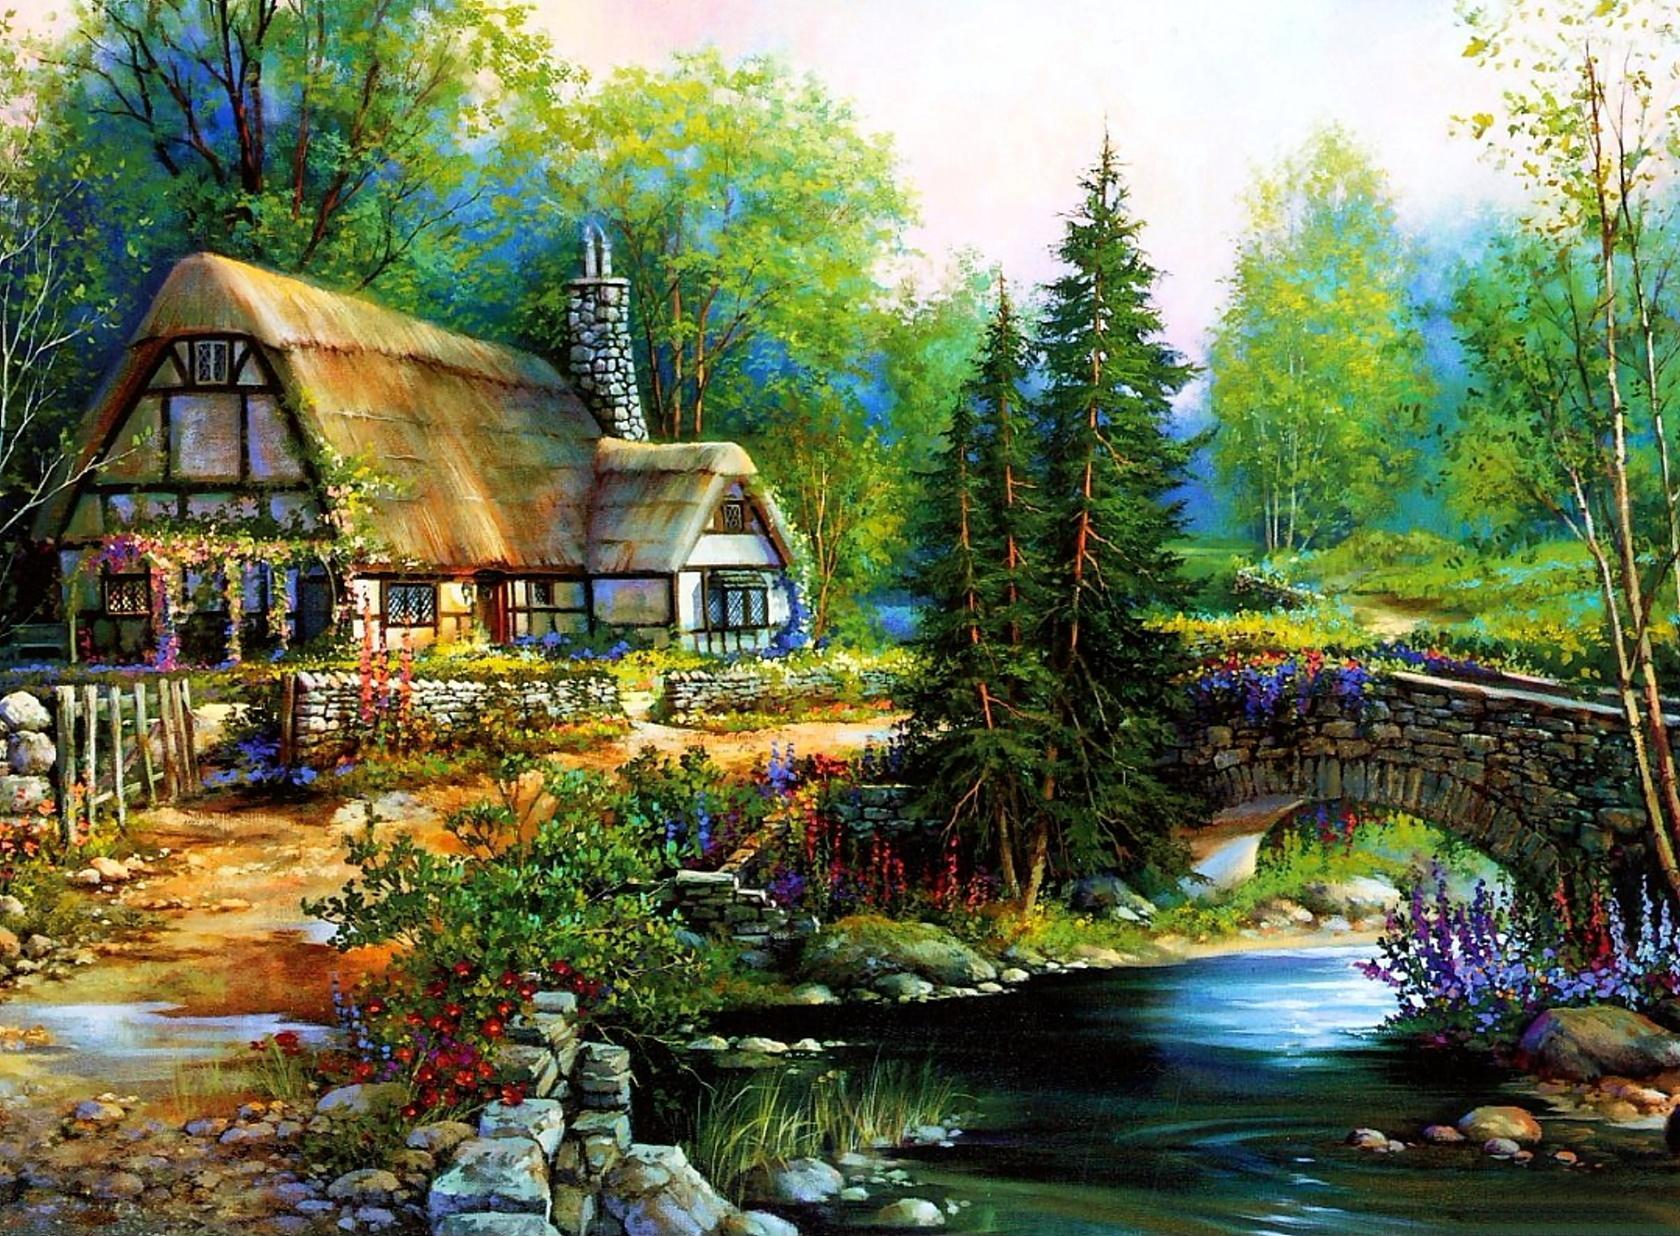 Chinese Girl Painting Wallpaper Free Download Cottage Wallpaper Pixelstalk Net